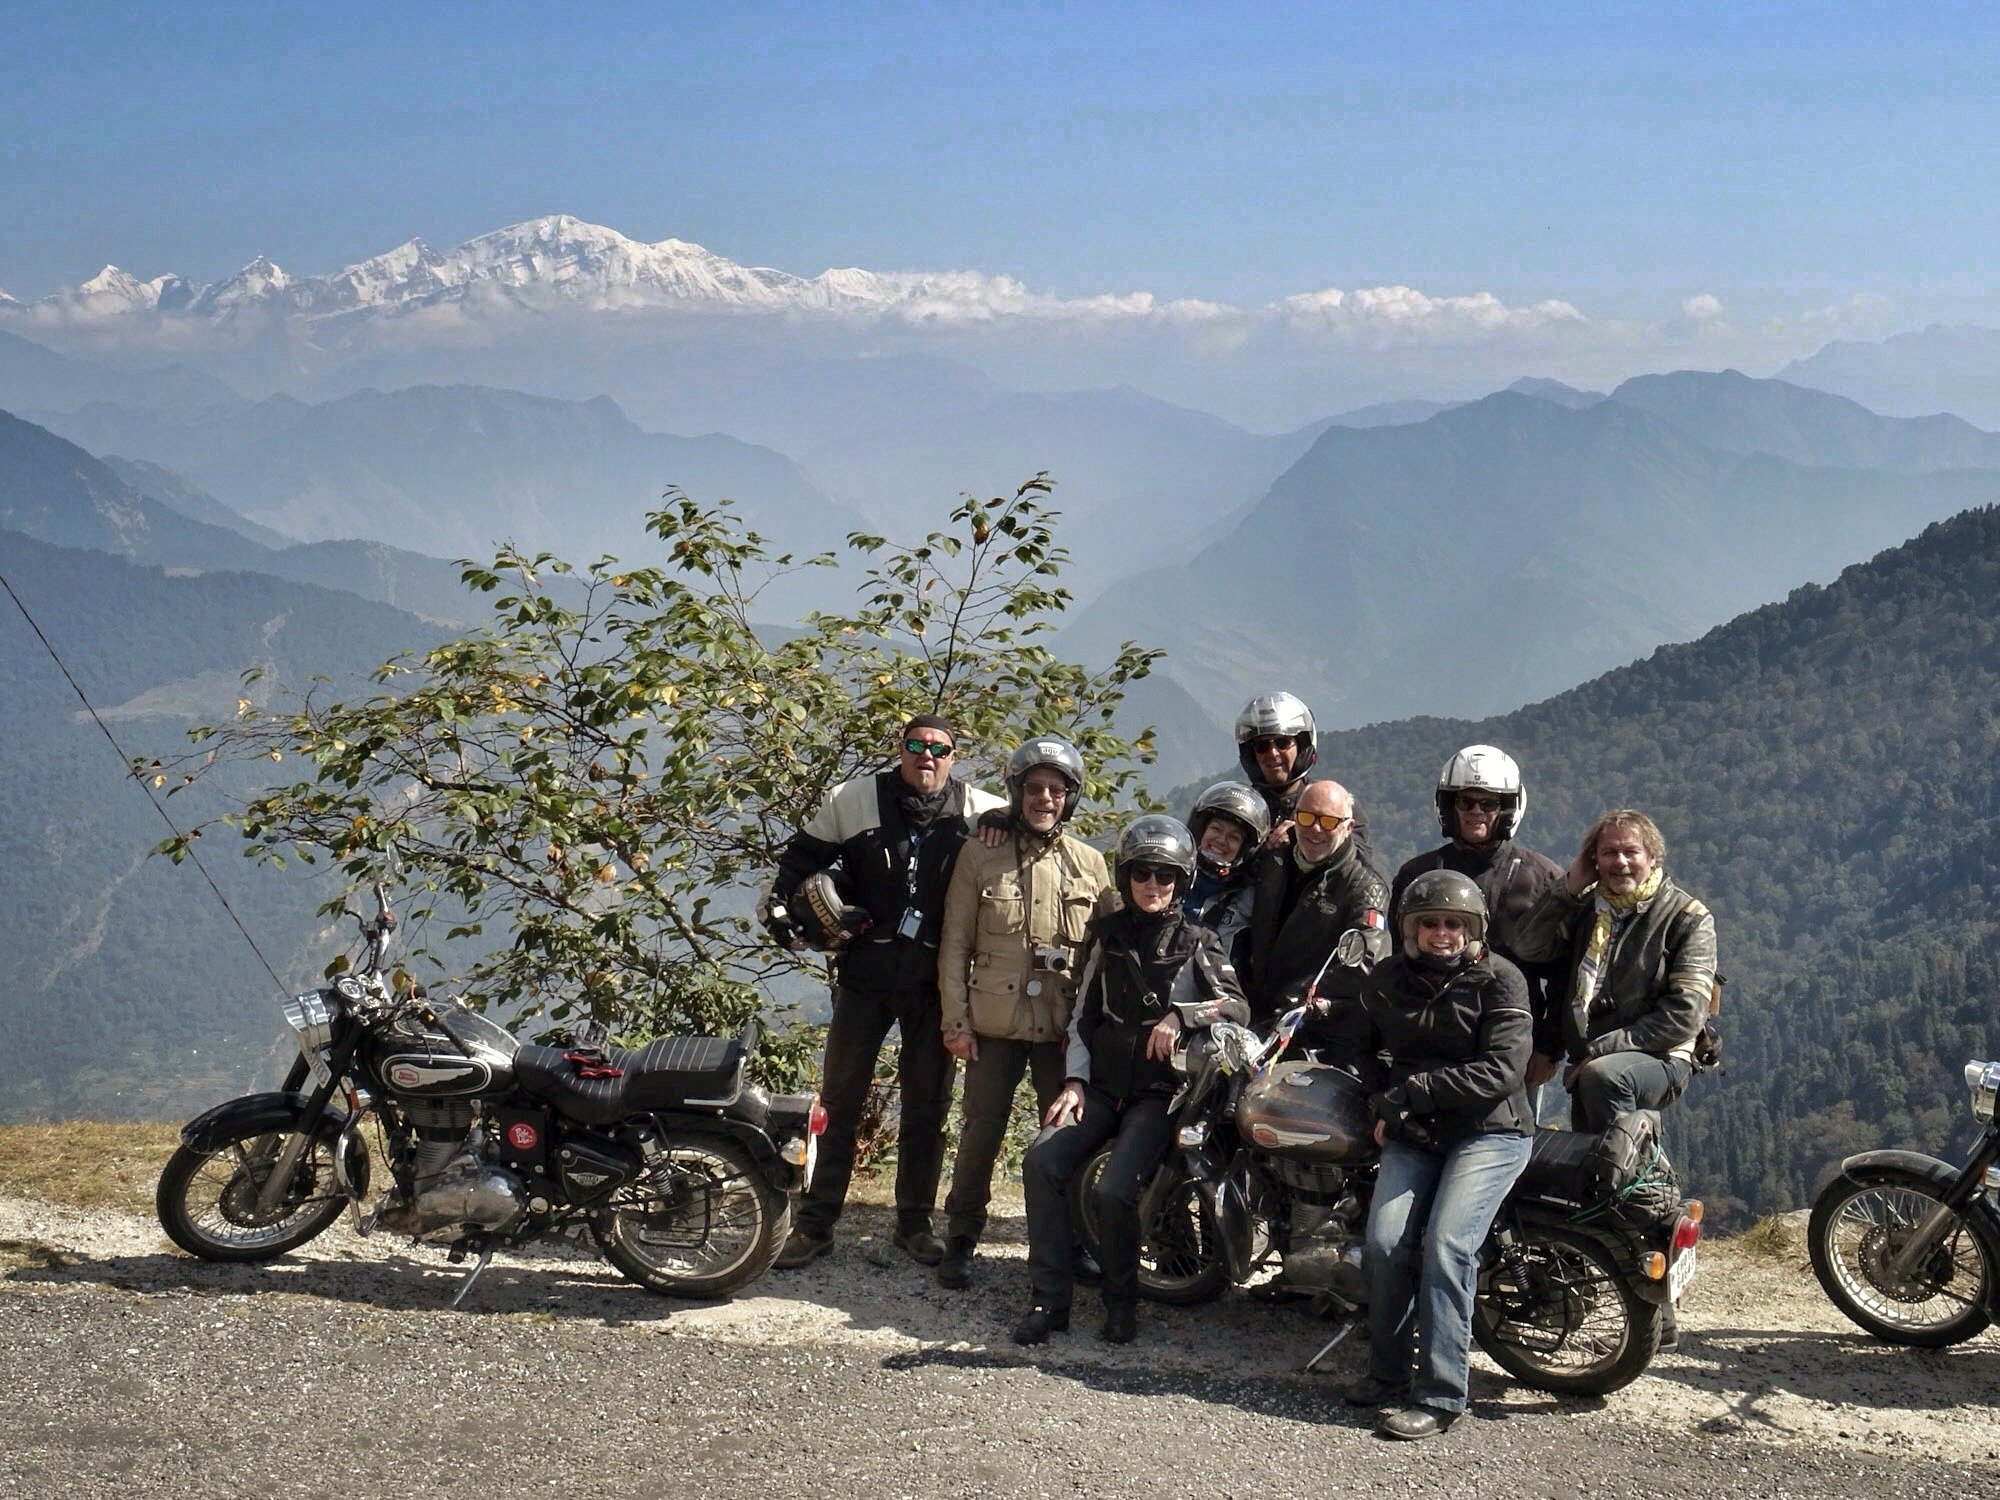 Motorcycle road trip India / Himalaya - Luxury Tour in Uttarakhand